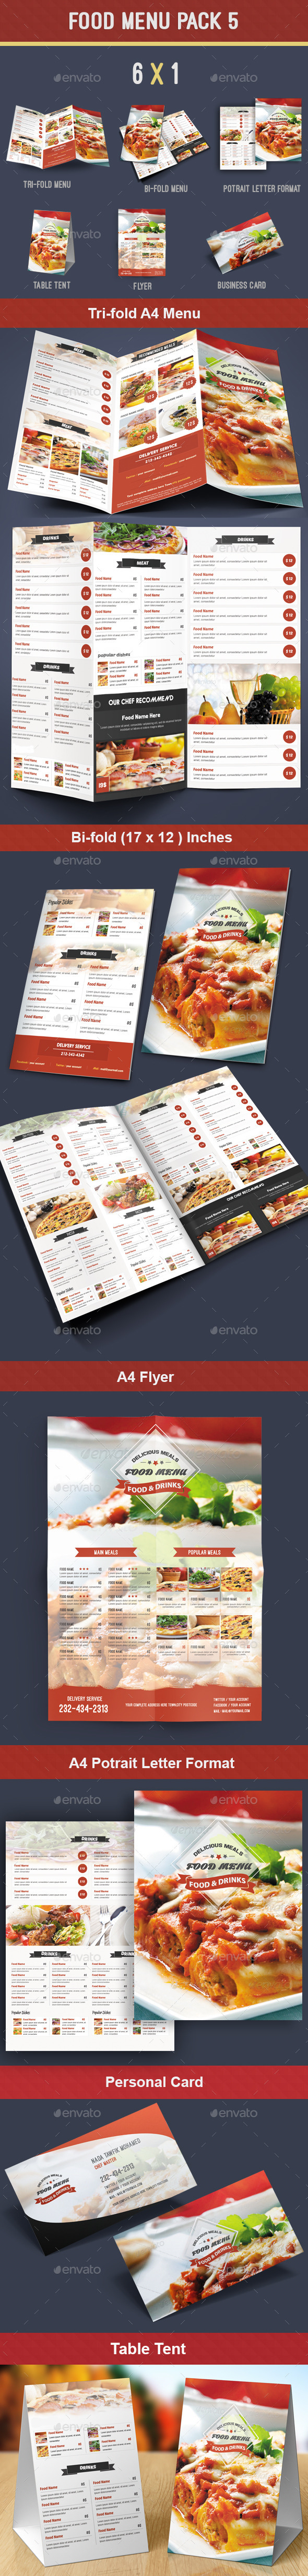 GraphicRiver Food Menu Pack 5 8757718